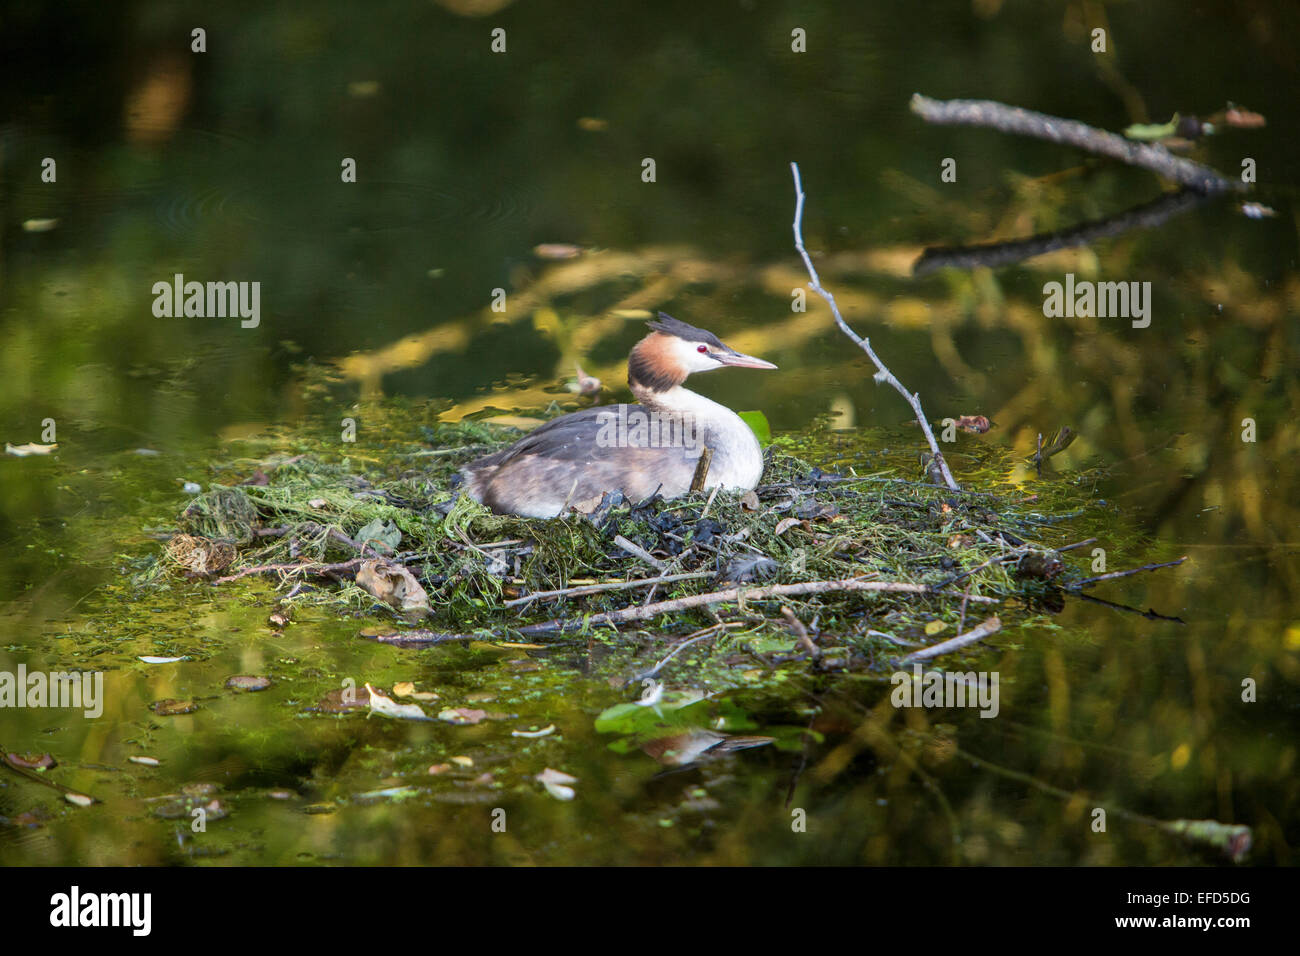 great crested grebe, Podiceps cristatus, breeding, at a nature reserve, river Ruhr, Essen, Germany, - Stock Image